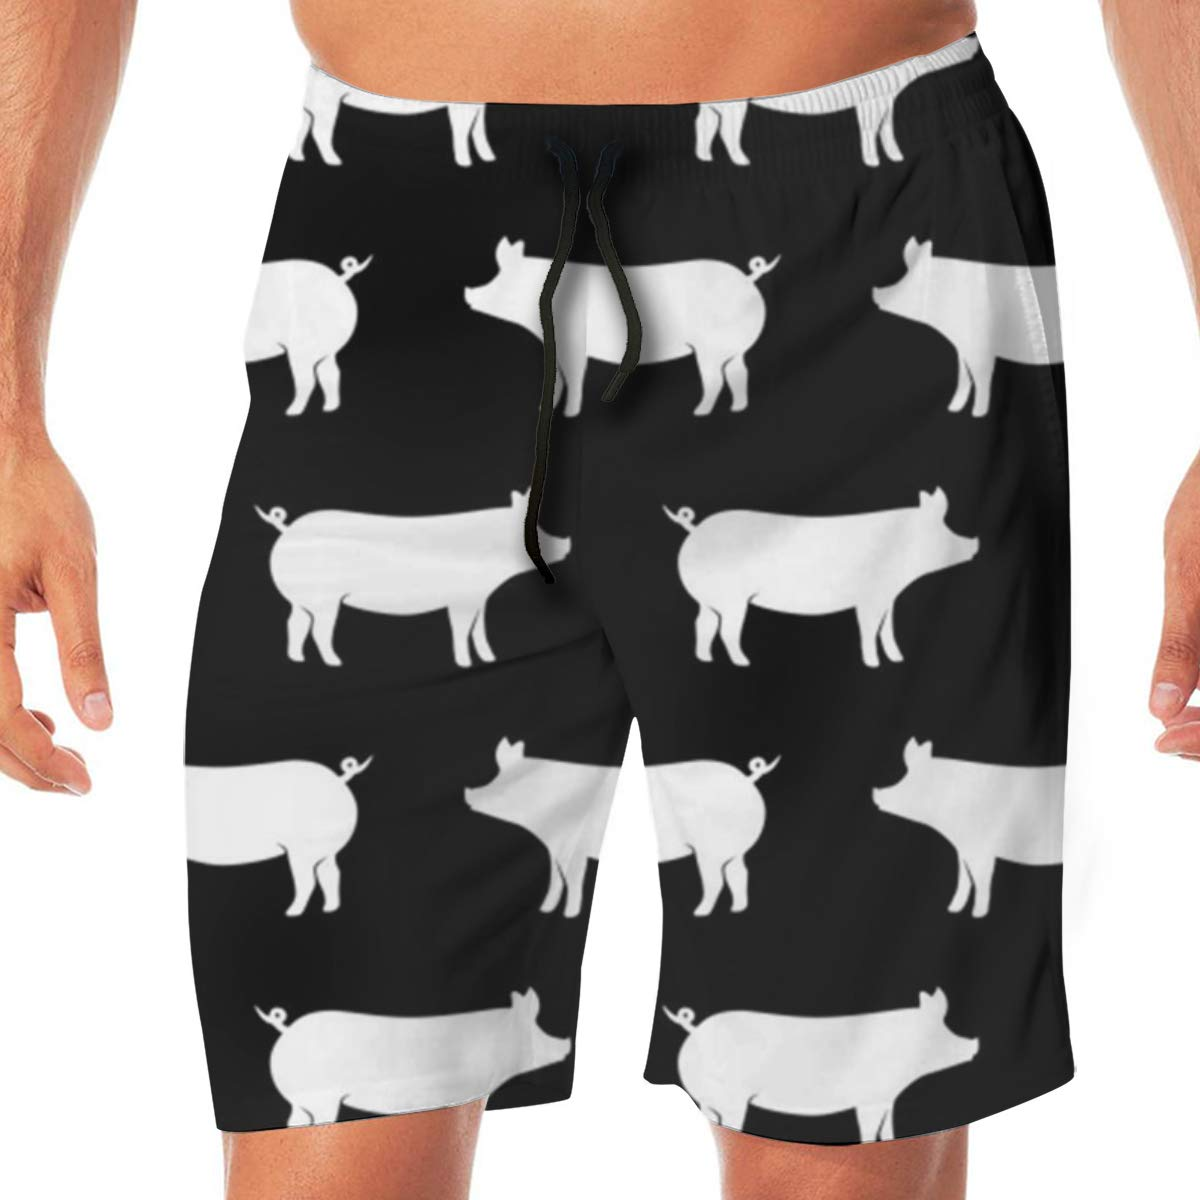 Black Casual Mens Swim Trunks Quick Dry Printed Beach Shorts Summer Boardshorts Bathing Suits with Drawstring TR2YU7YT Just Pigs